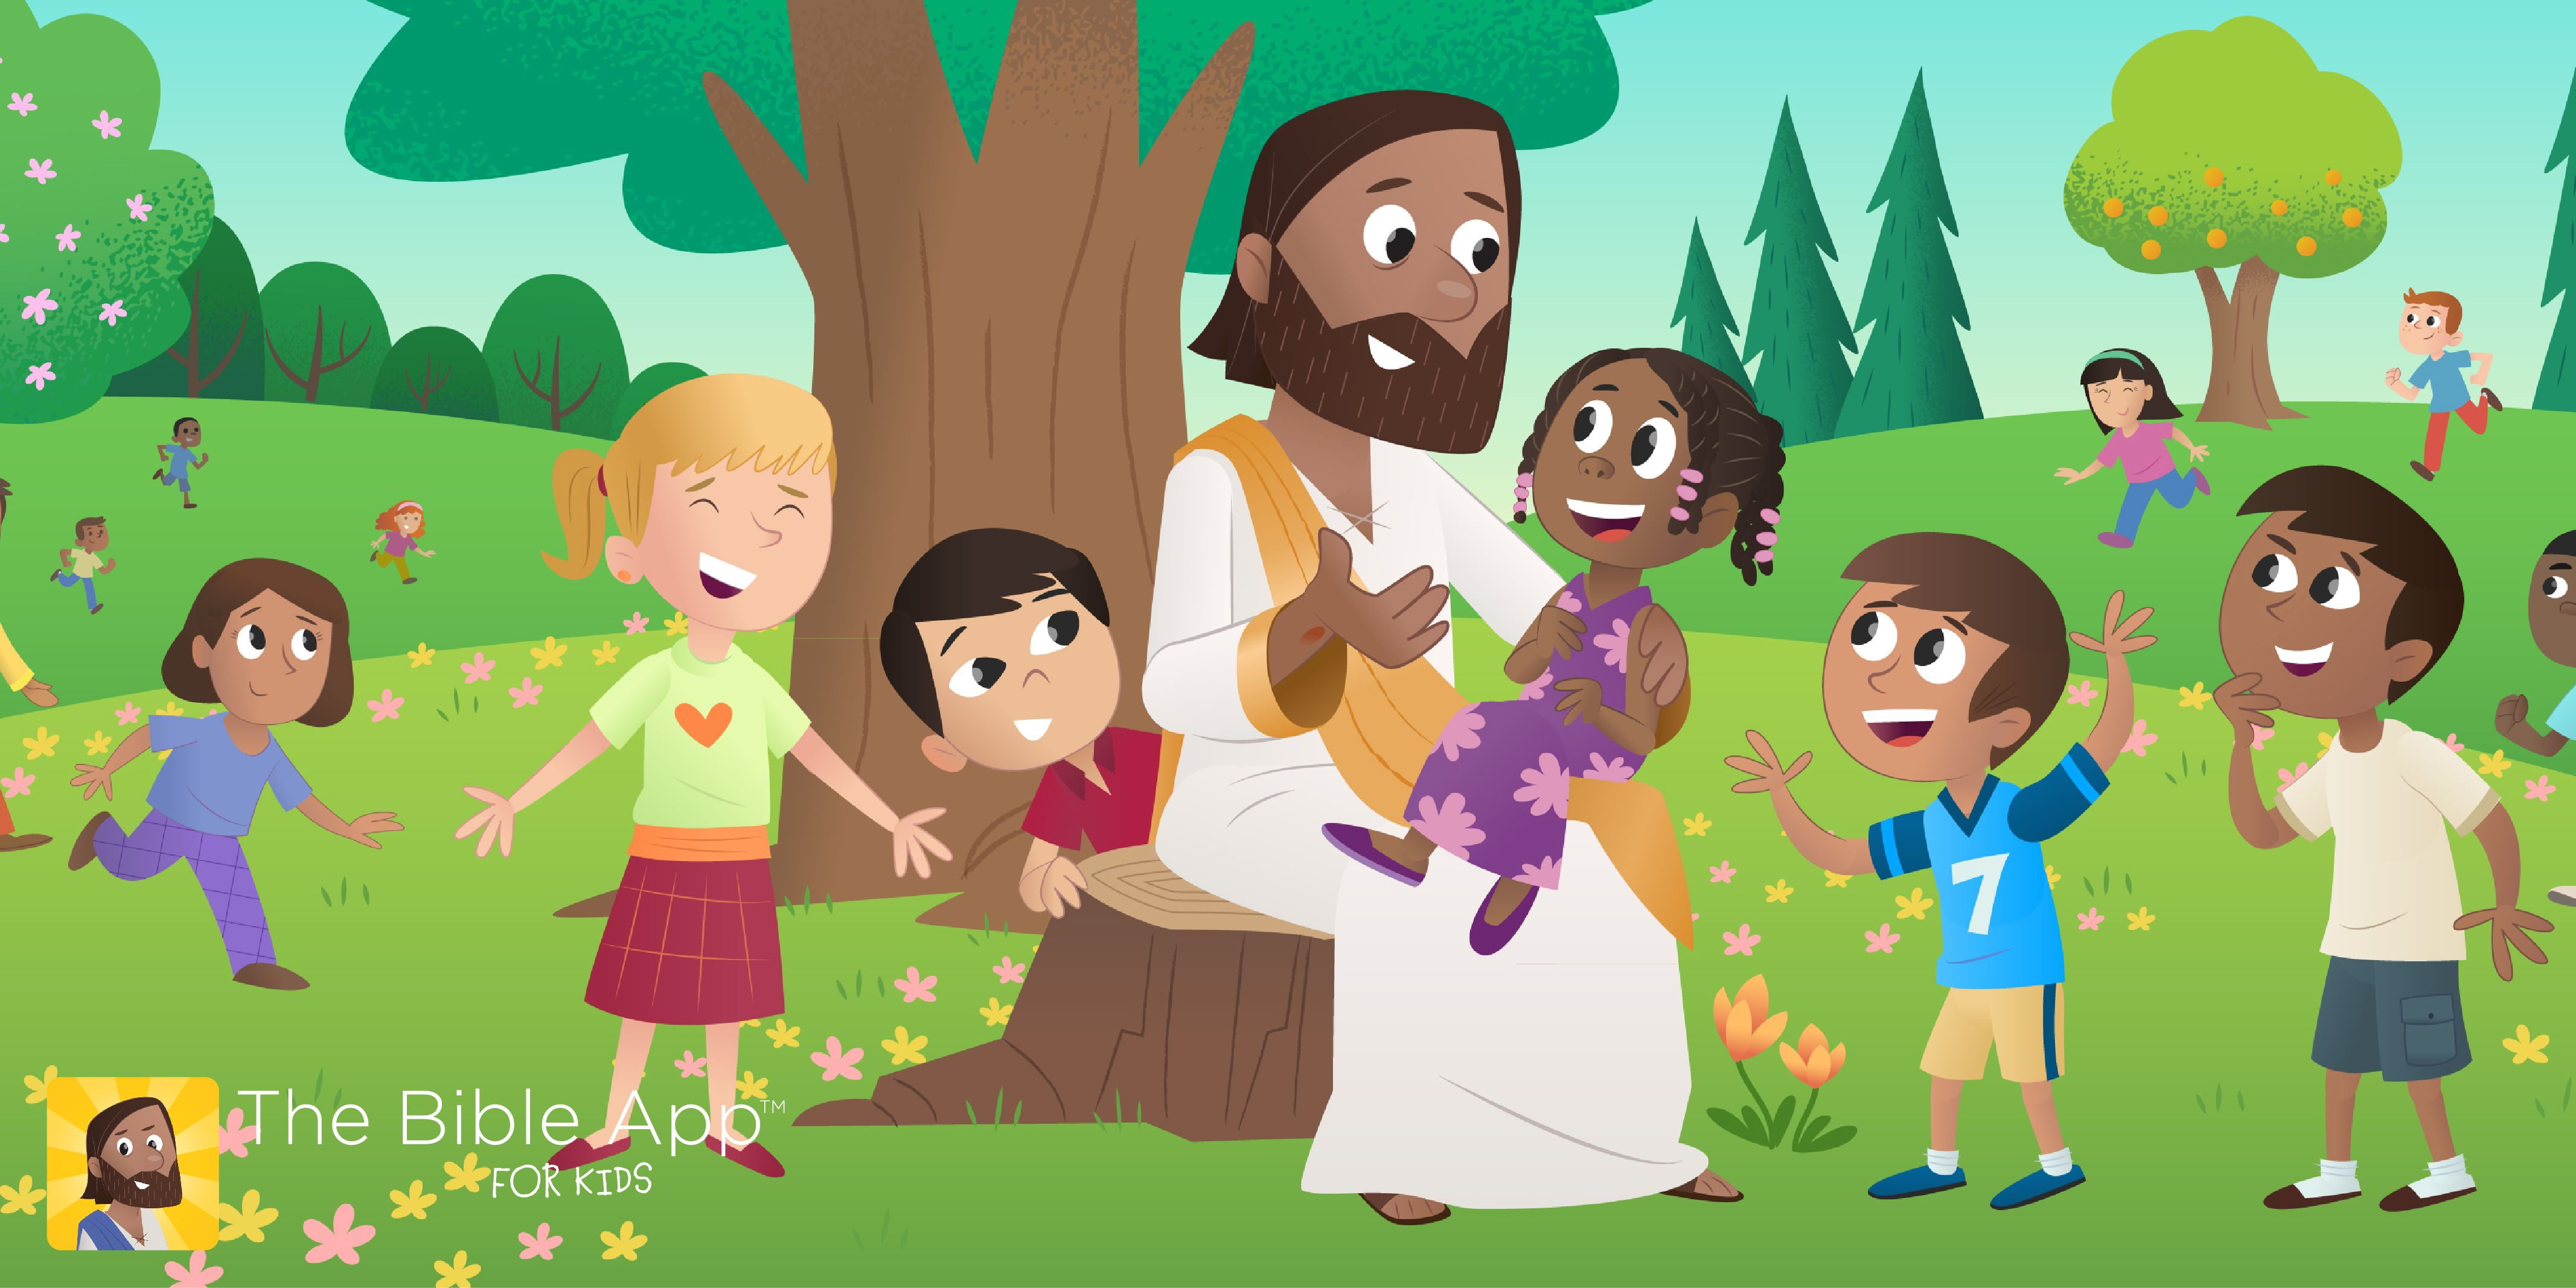 hight resolution of bible story images for kids google search jesus cura cria ao do mundo bible